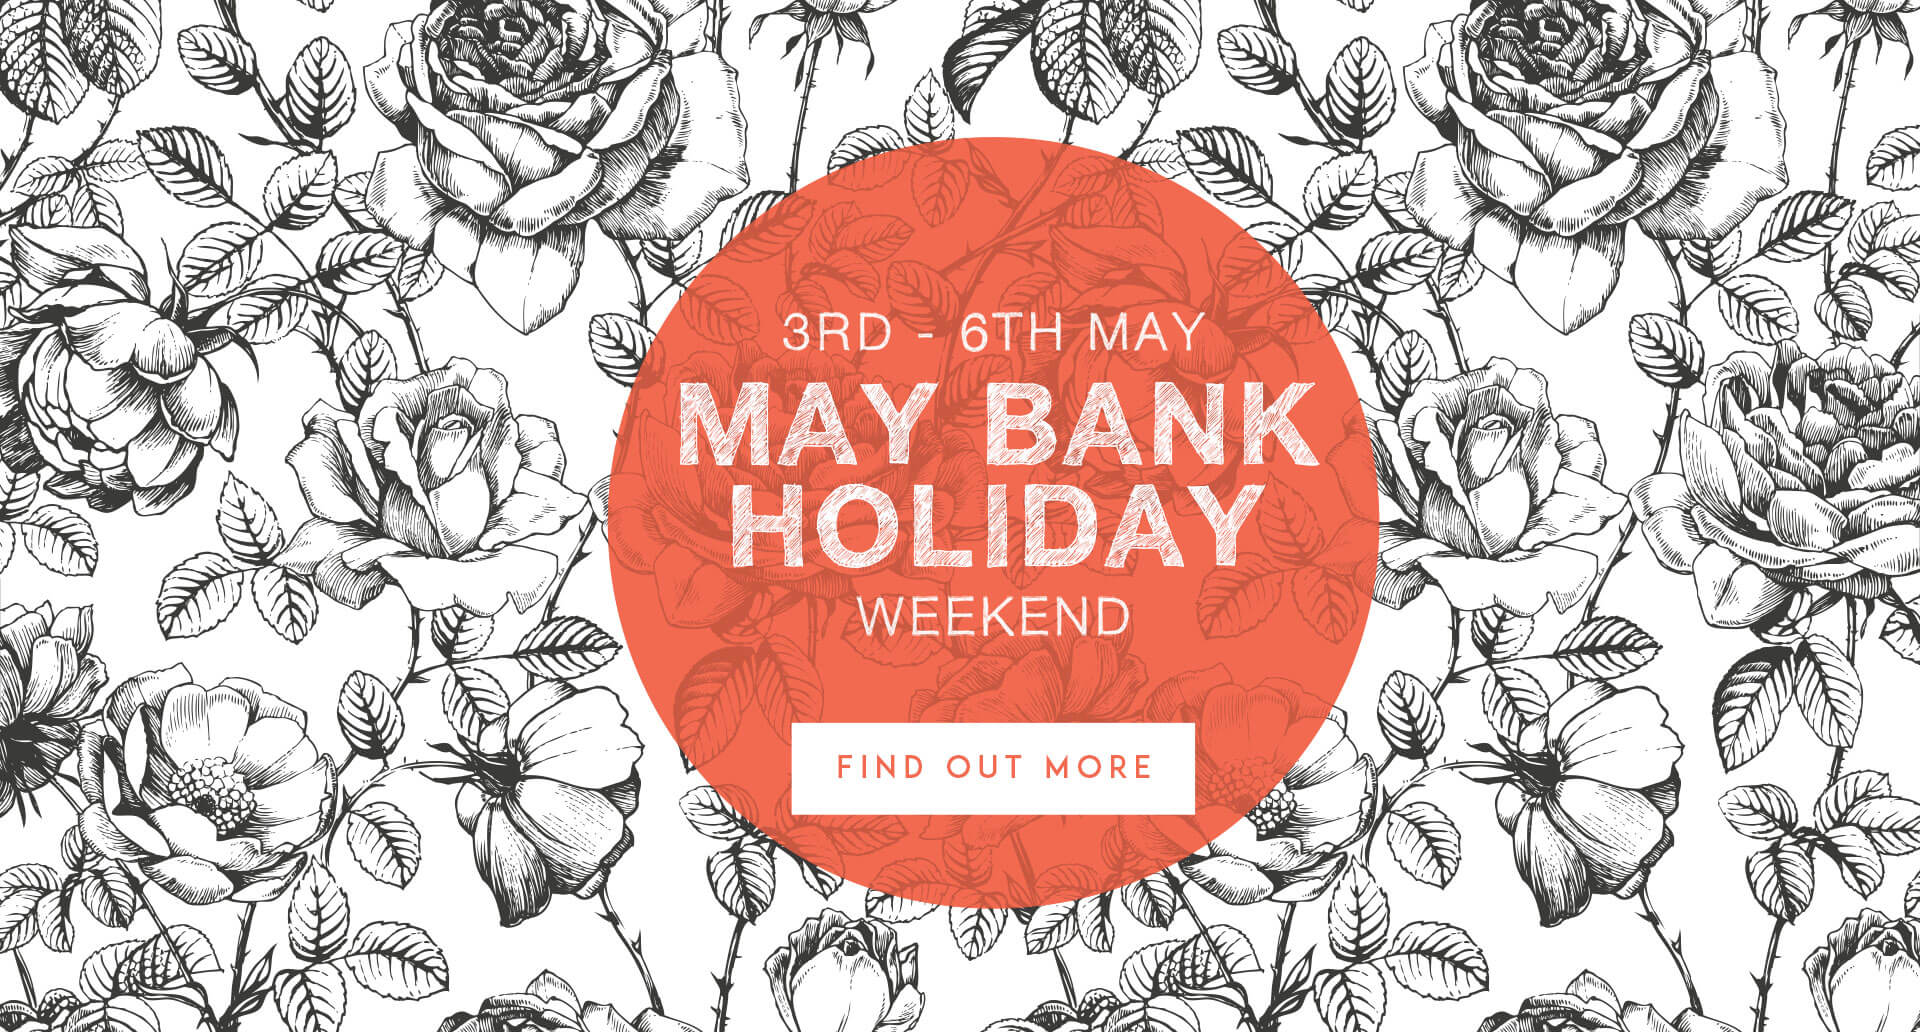 May Bank Holiday at The Devonshire Arms